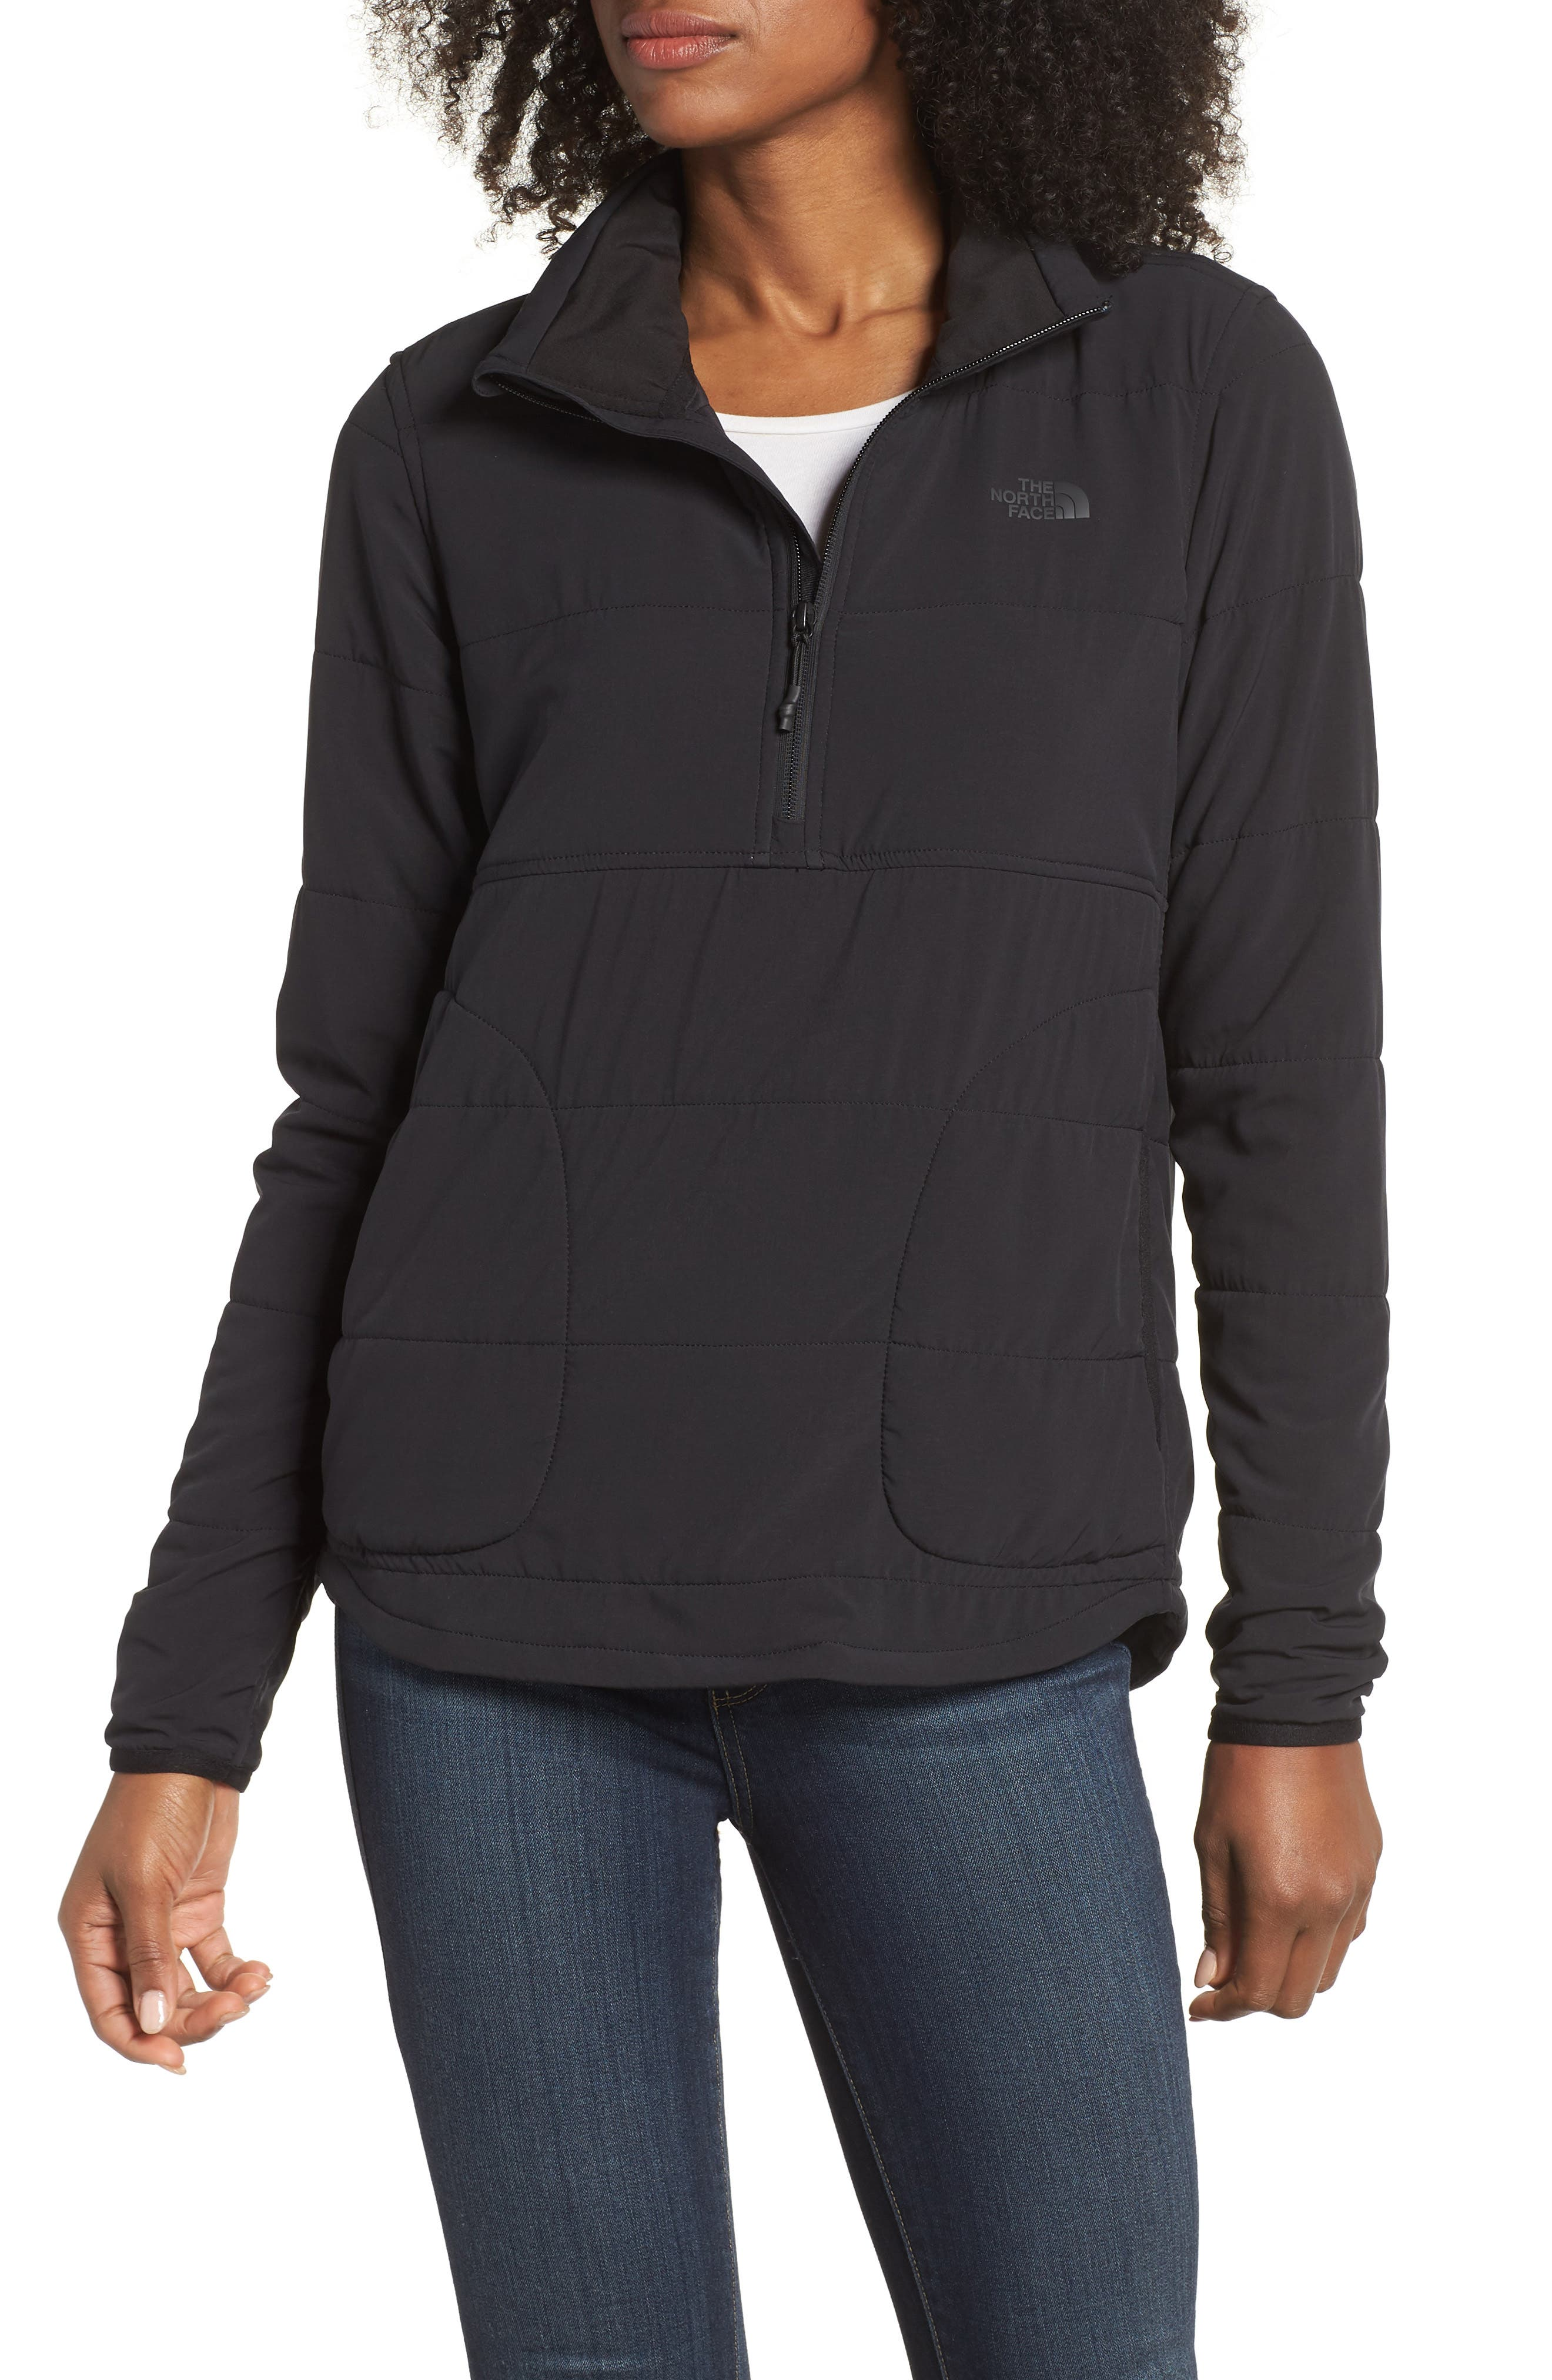 Mountain Sweatshirt Quarter Zip Pullover,                             Main thumbnail 1, color,